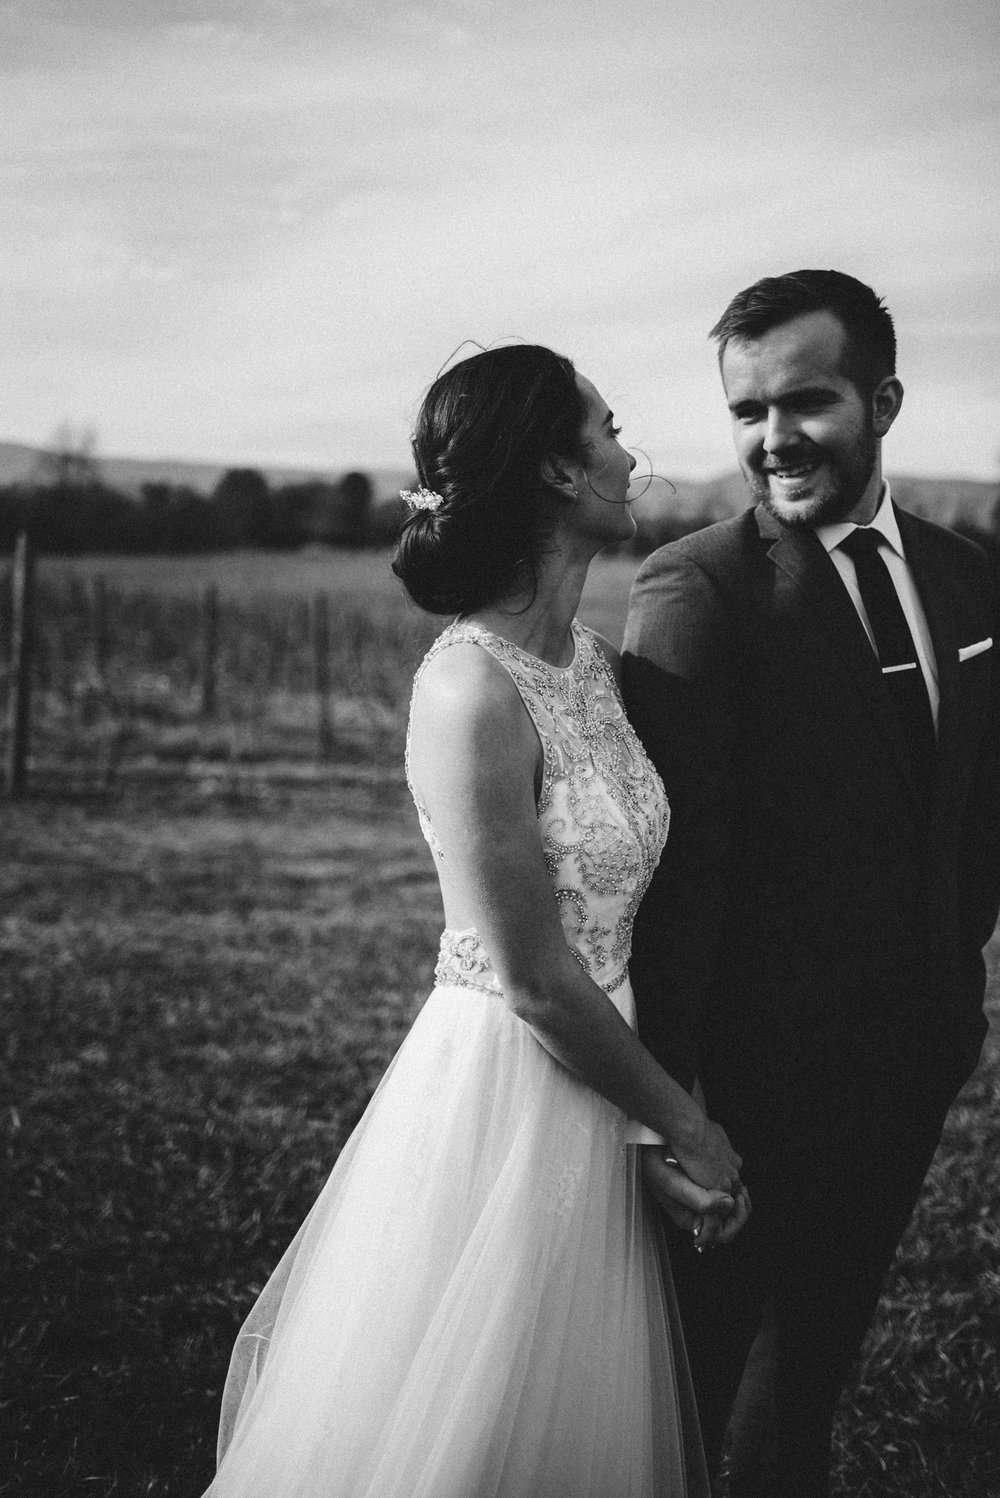 Alyssa and Jesse Winter Vineyard Wedding Luray Virginia Shenandoah Valley Faithbrooke_33.JPG